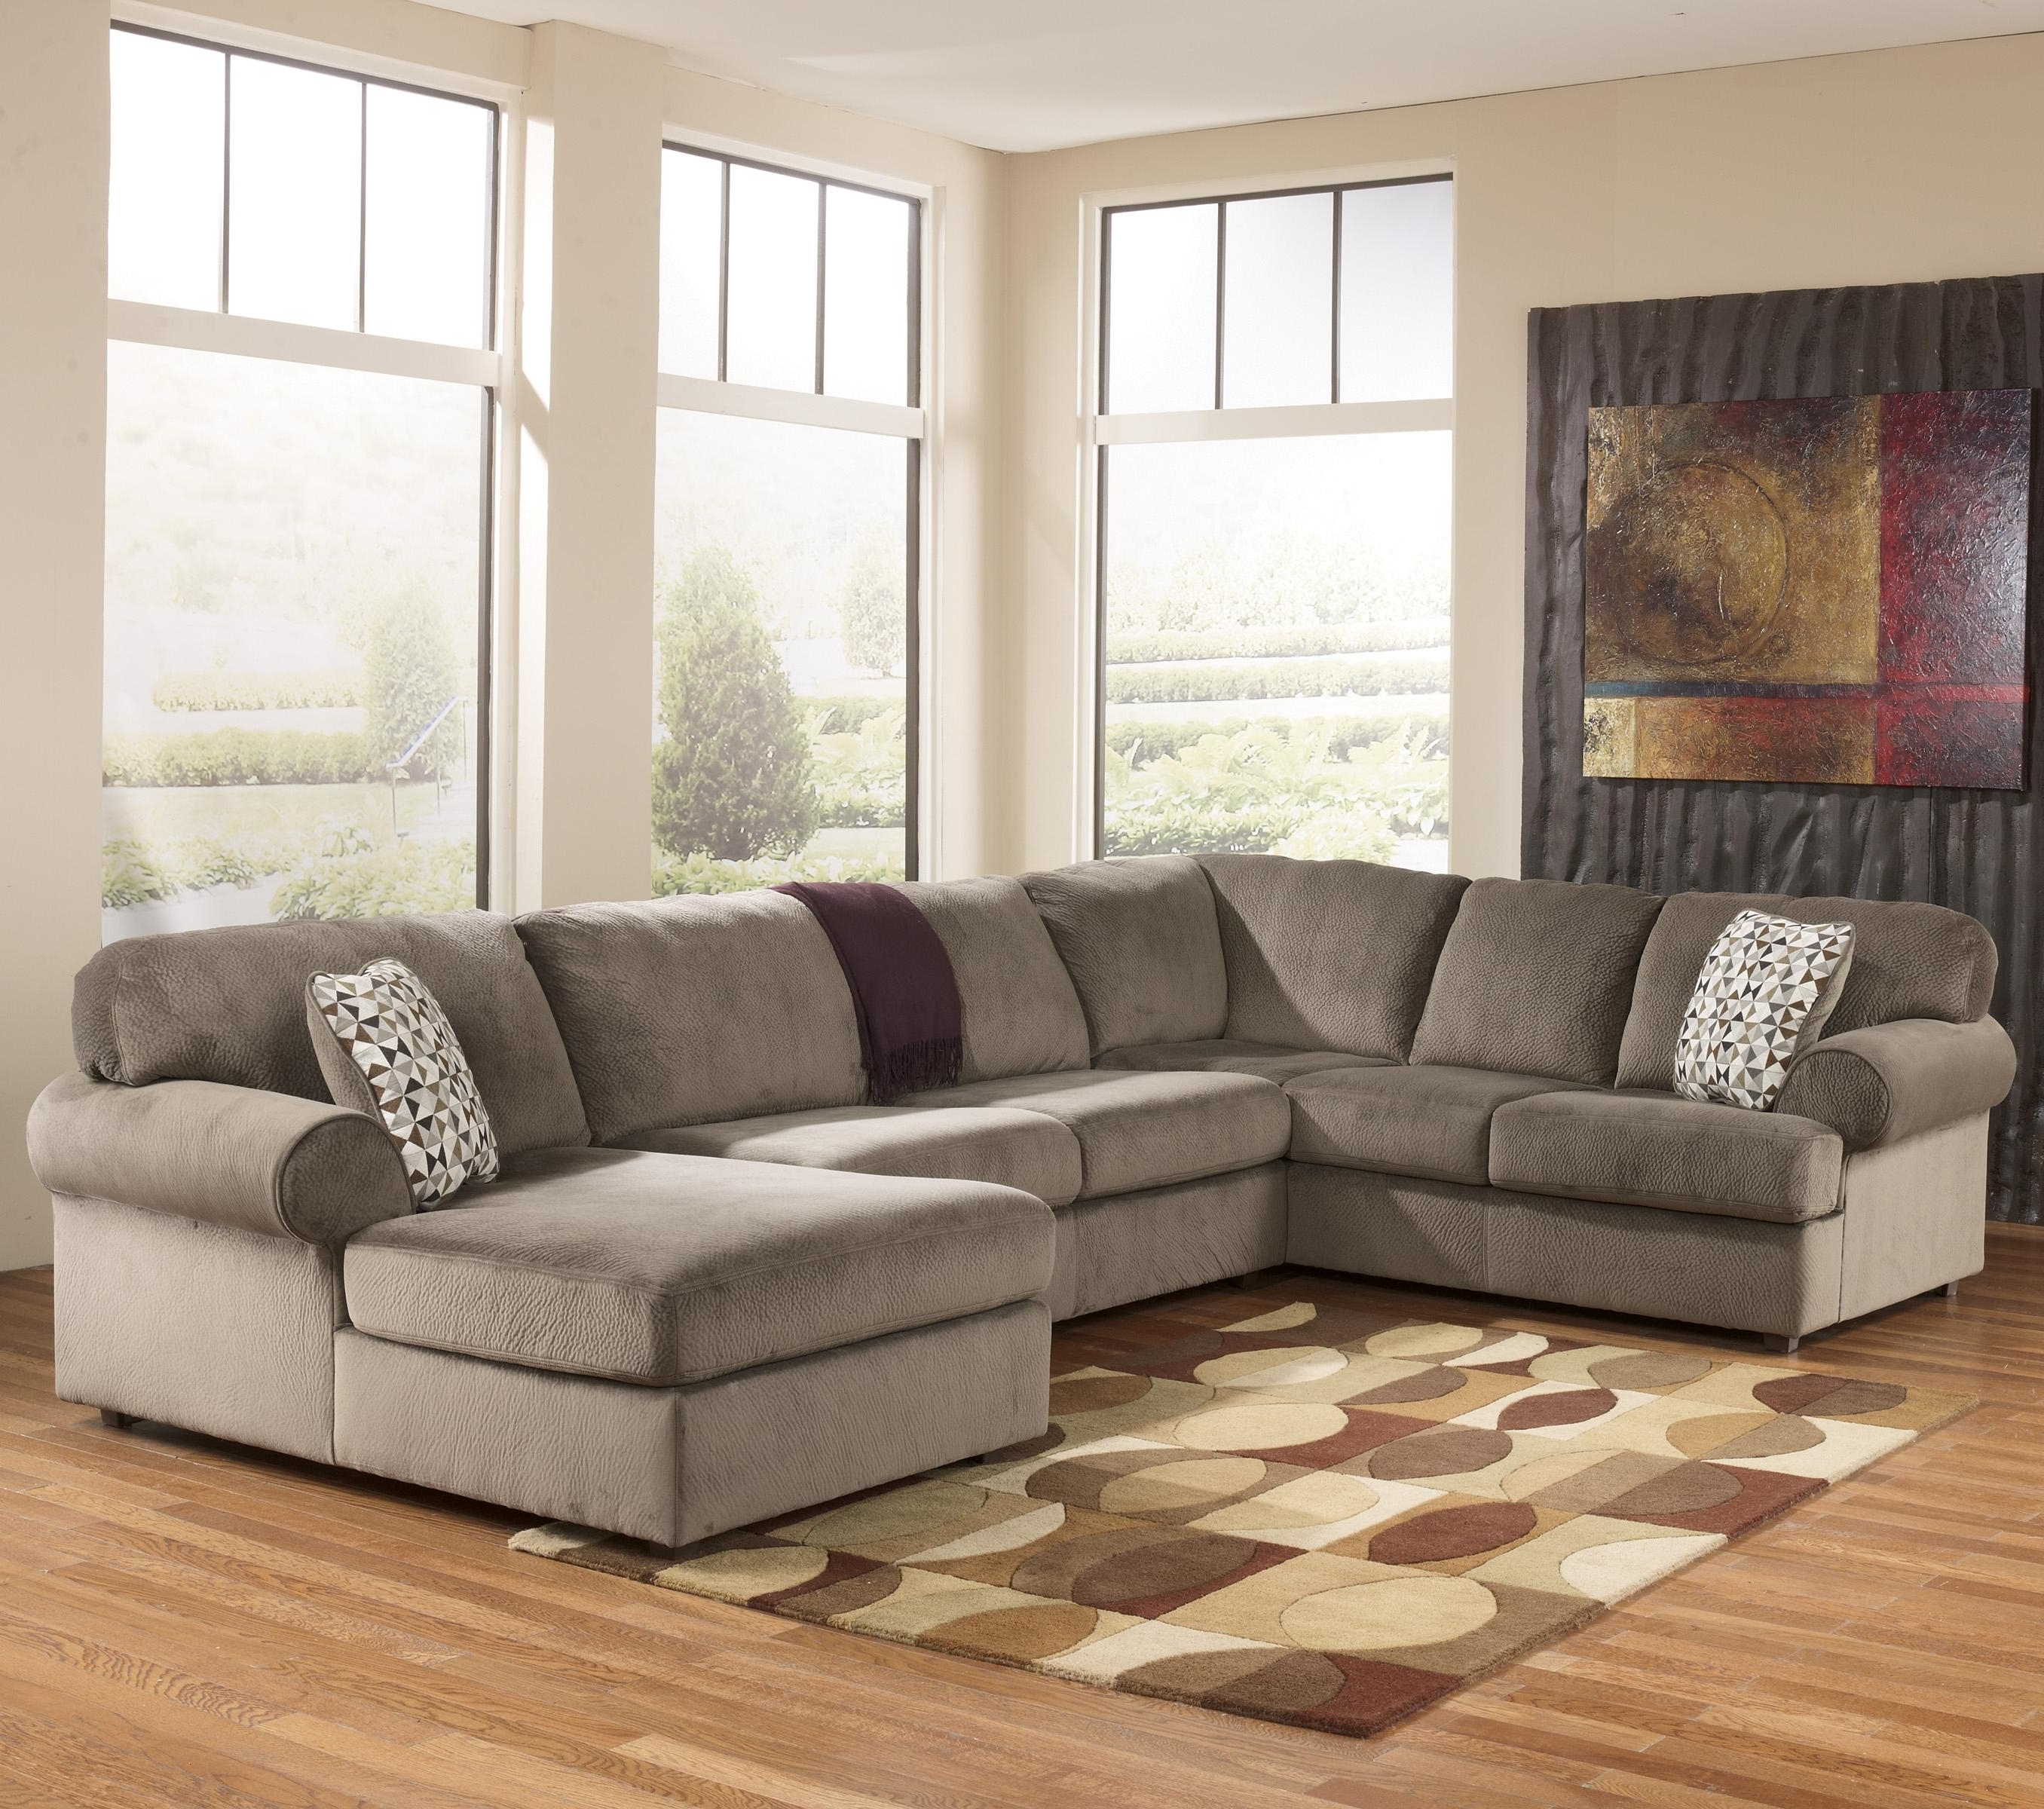 Signature Designashley Jessa Place – Dune Casual Sectional With Regard To 2017 Killeen Tx Sectional Sofas (View 5 of 15)